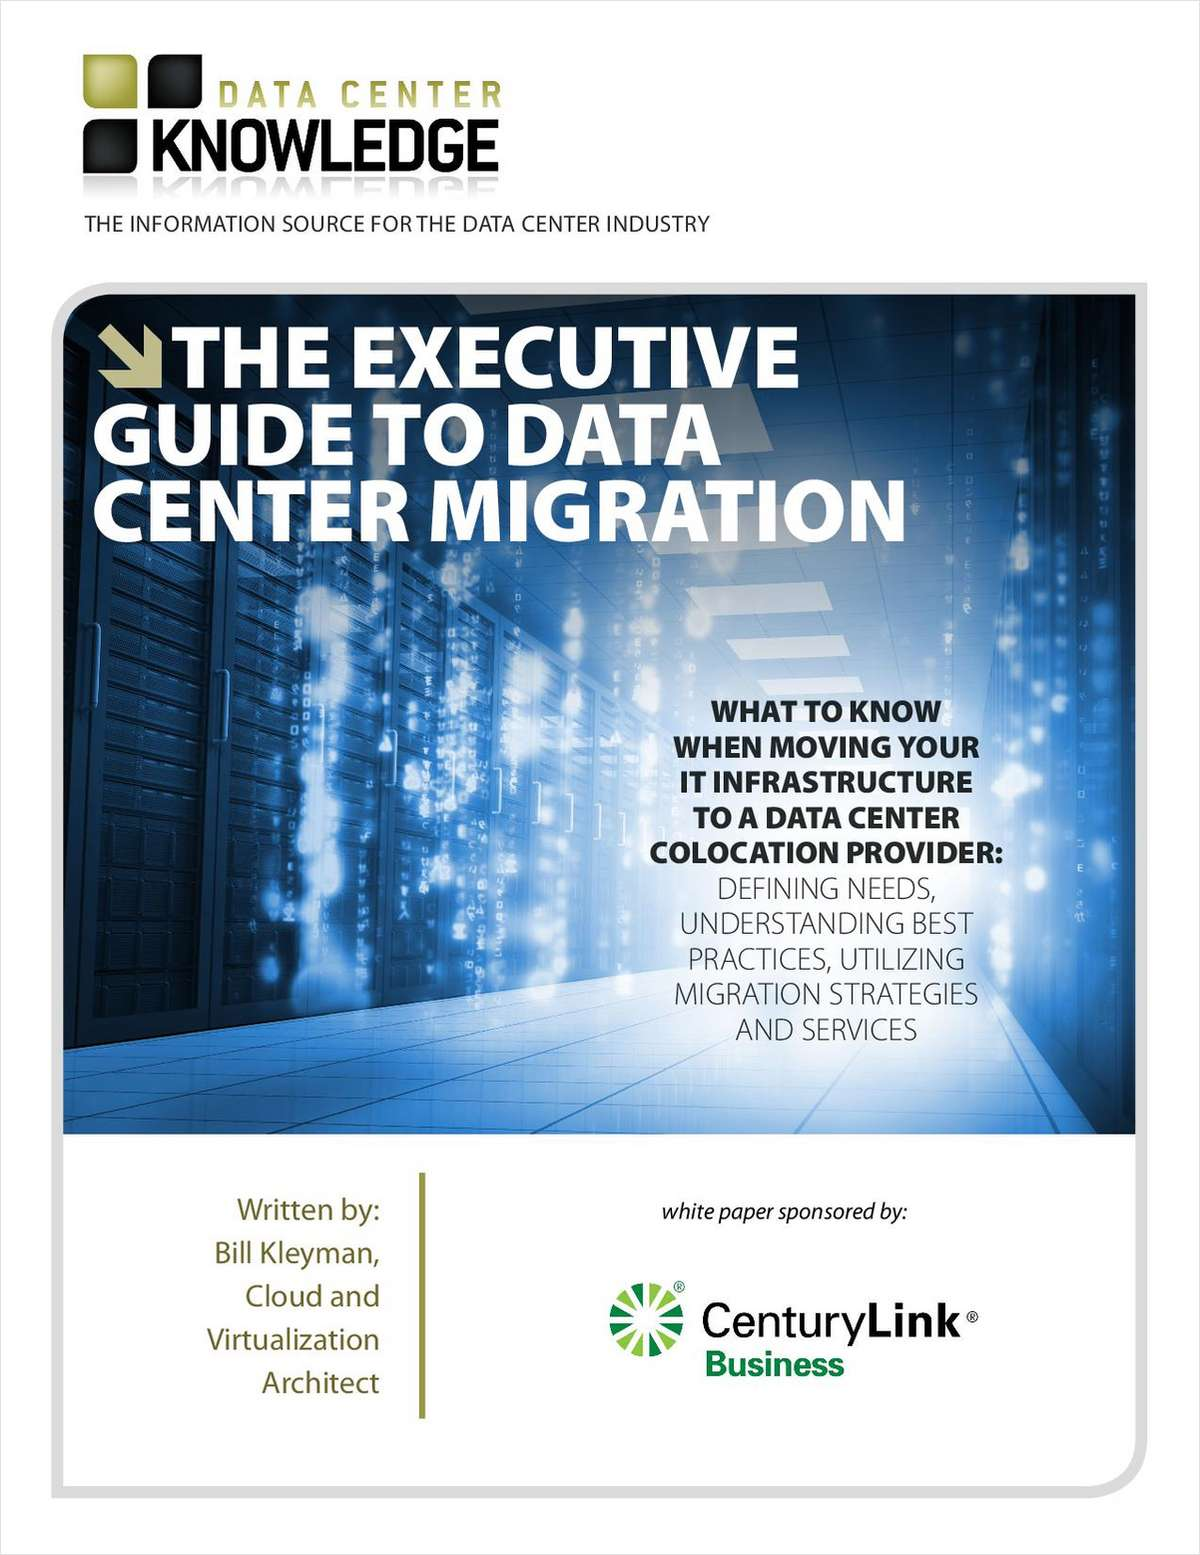 Data Center Knowledge's 'Executive Guide to Data Center Migration'